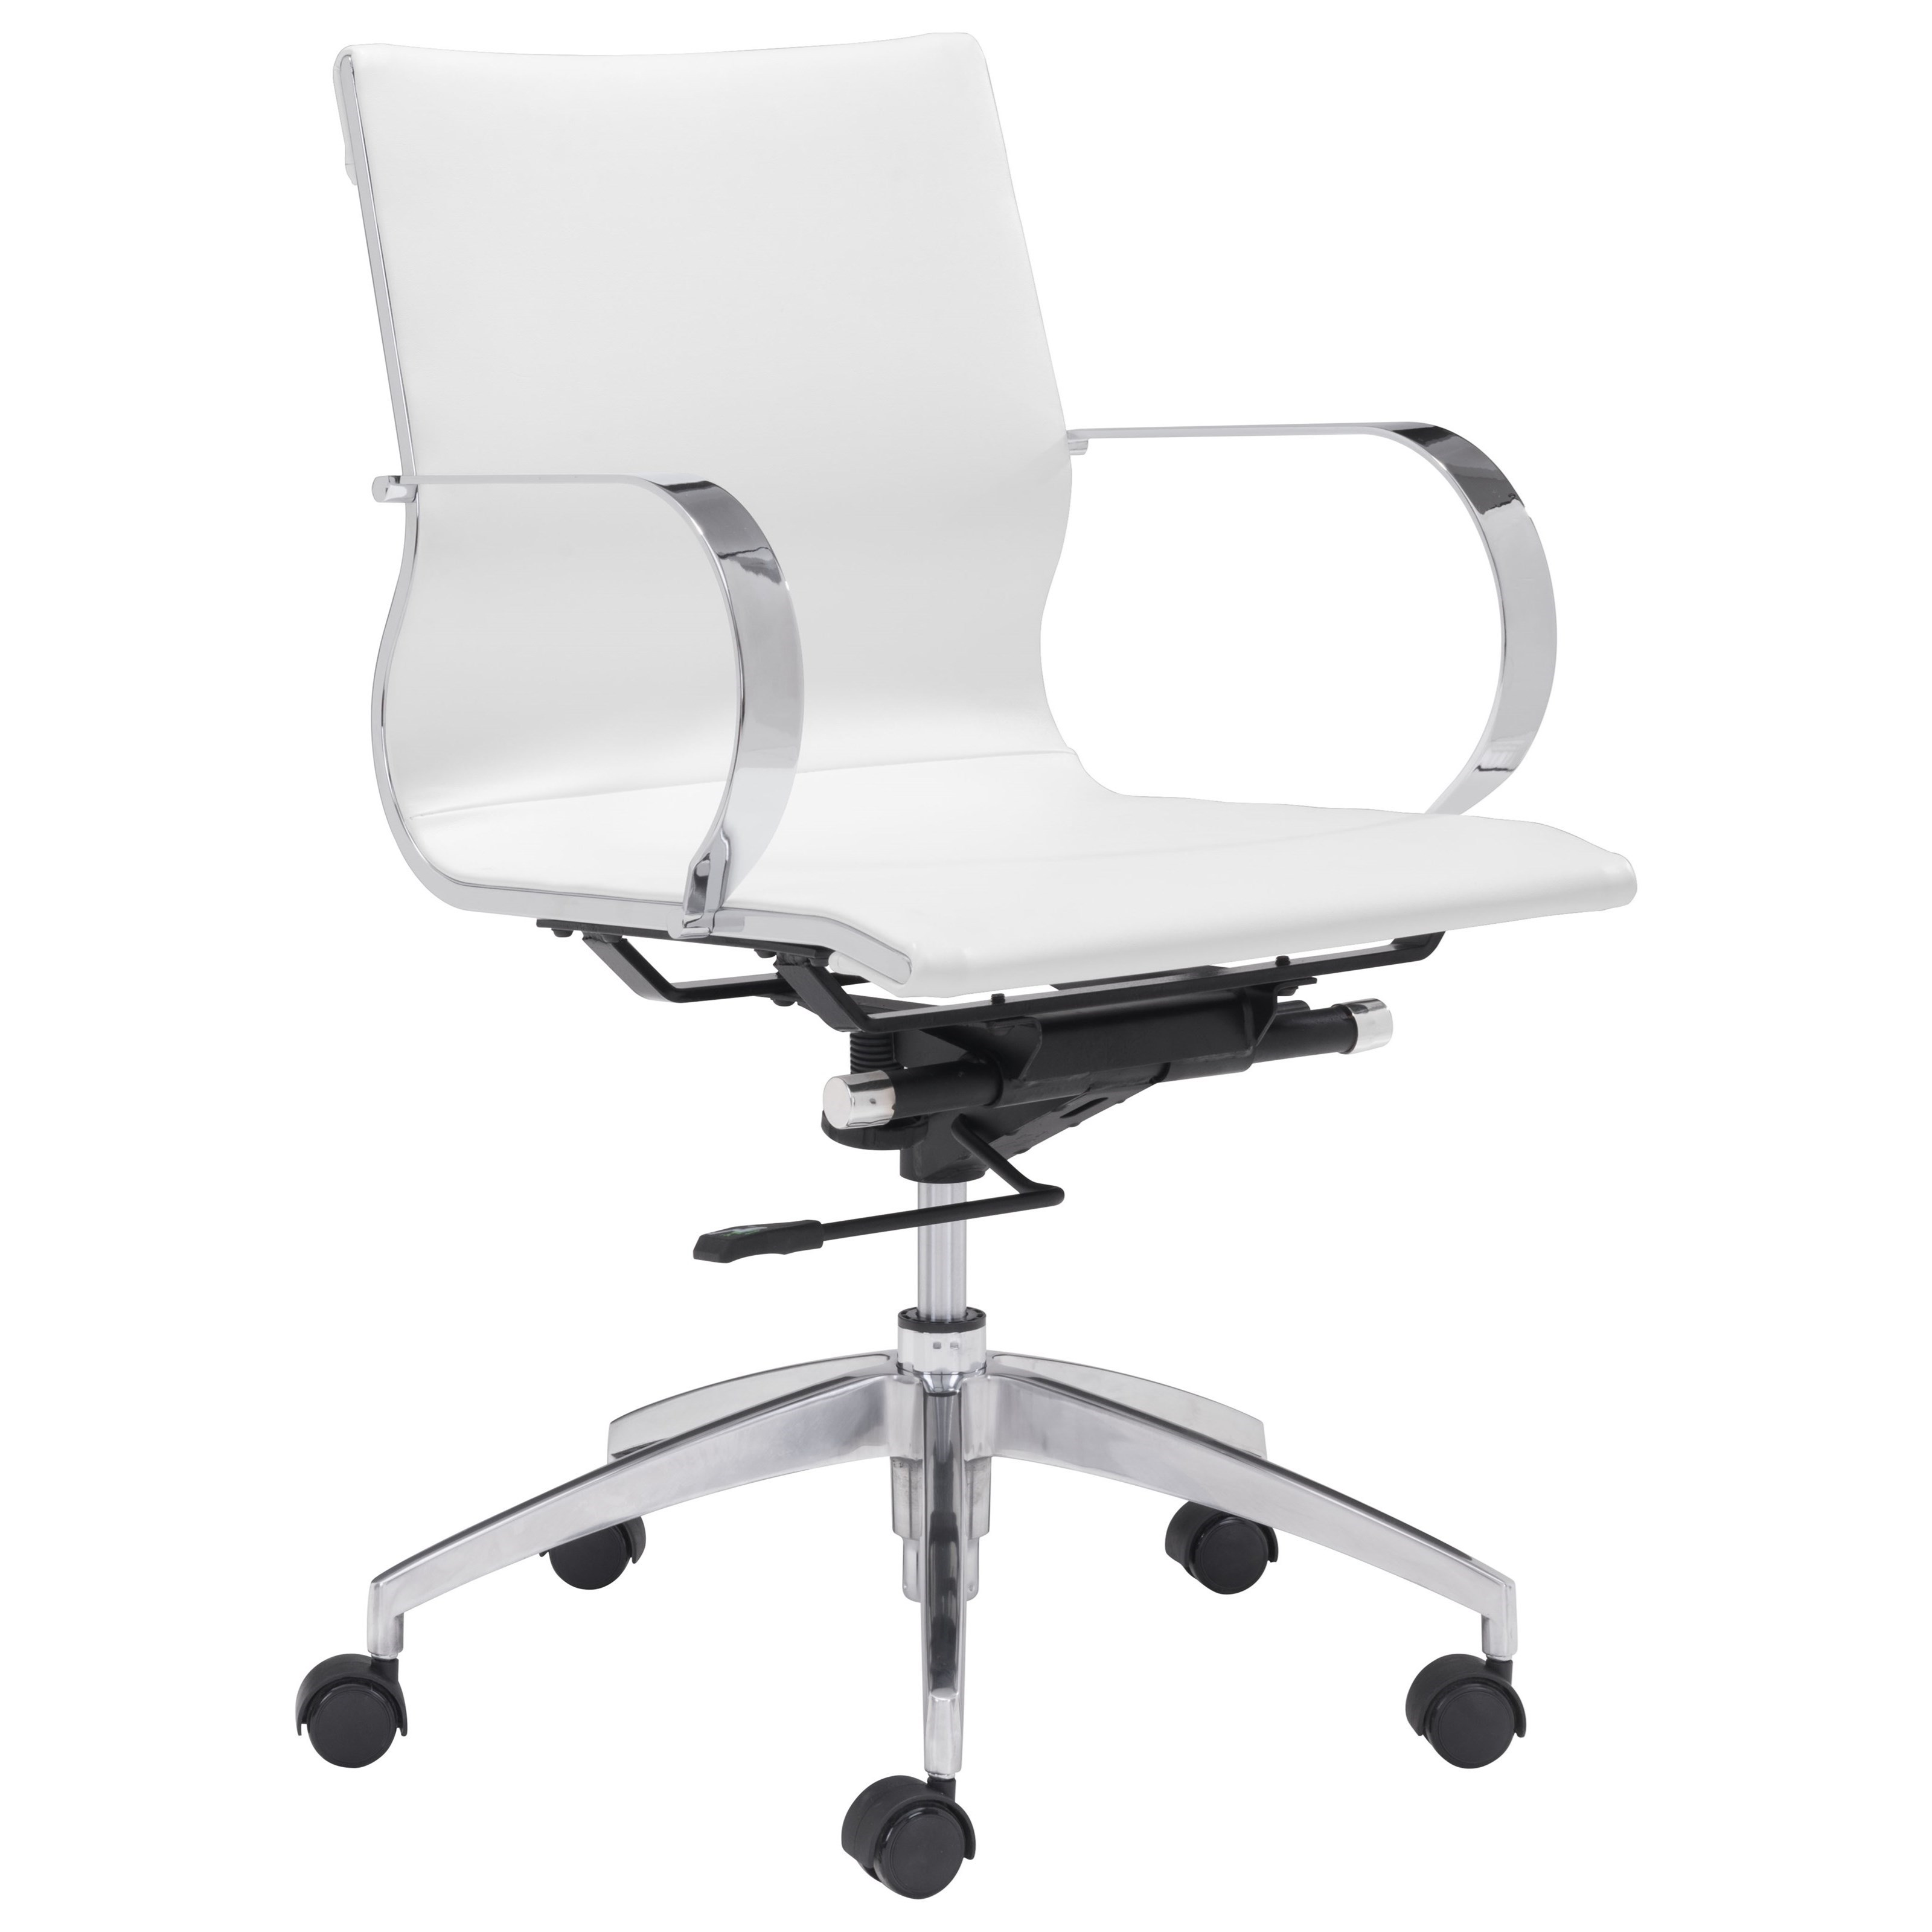 Low Back Office Chair Glider Low Back Office Chair By Zuo At Royal Furniture